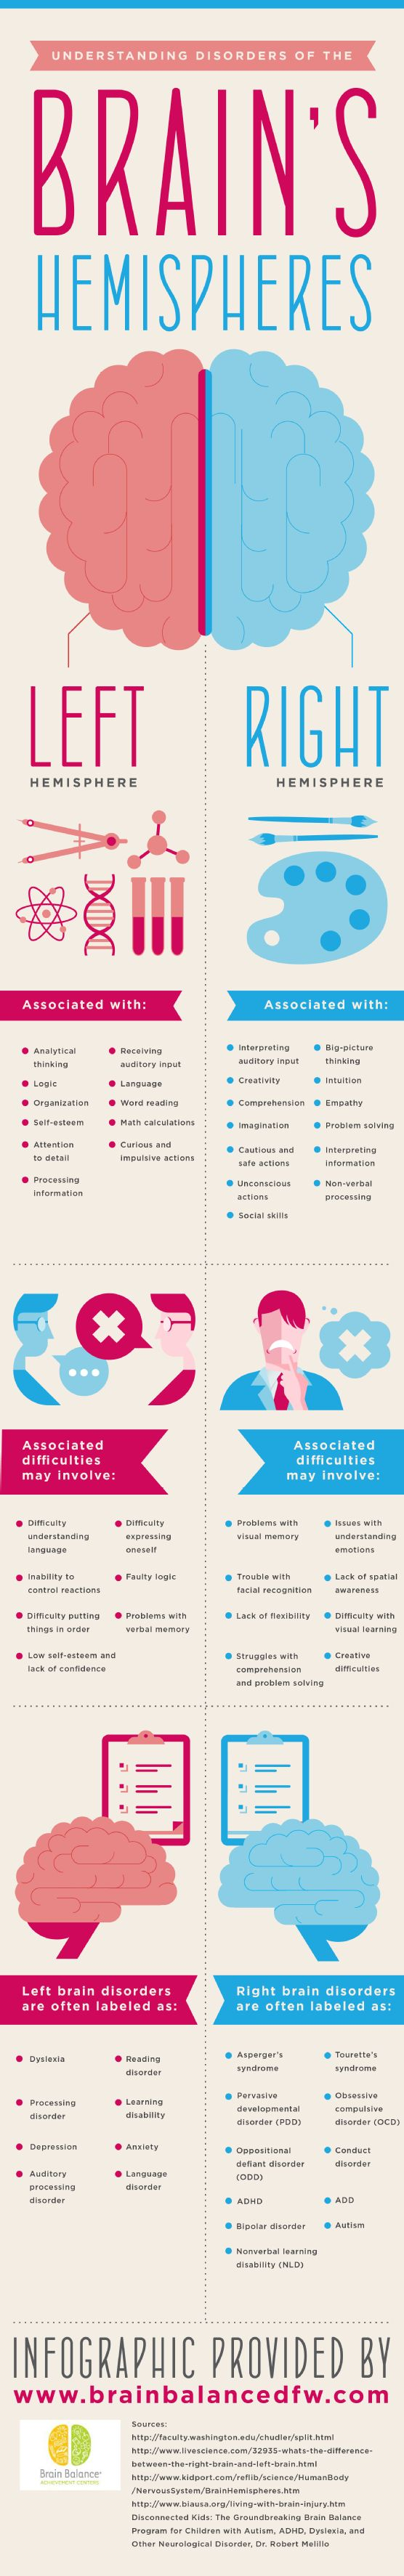 Understanding Disorders Of The Brain's Hemispheres #Infographic #Brain #infografía